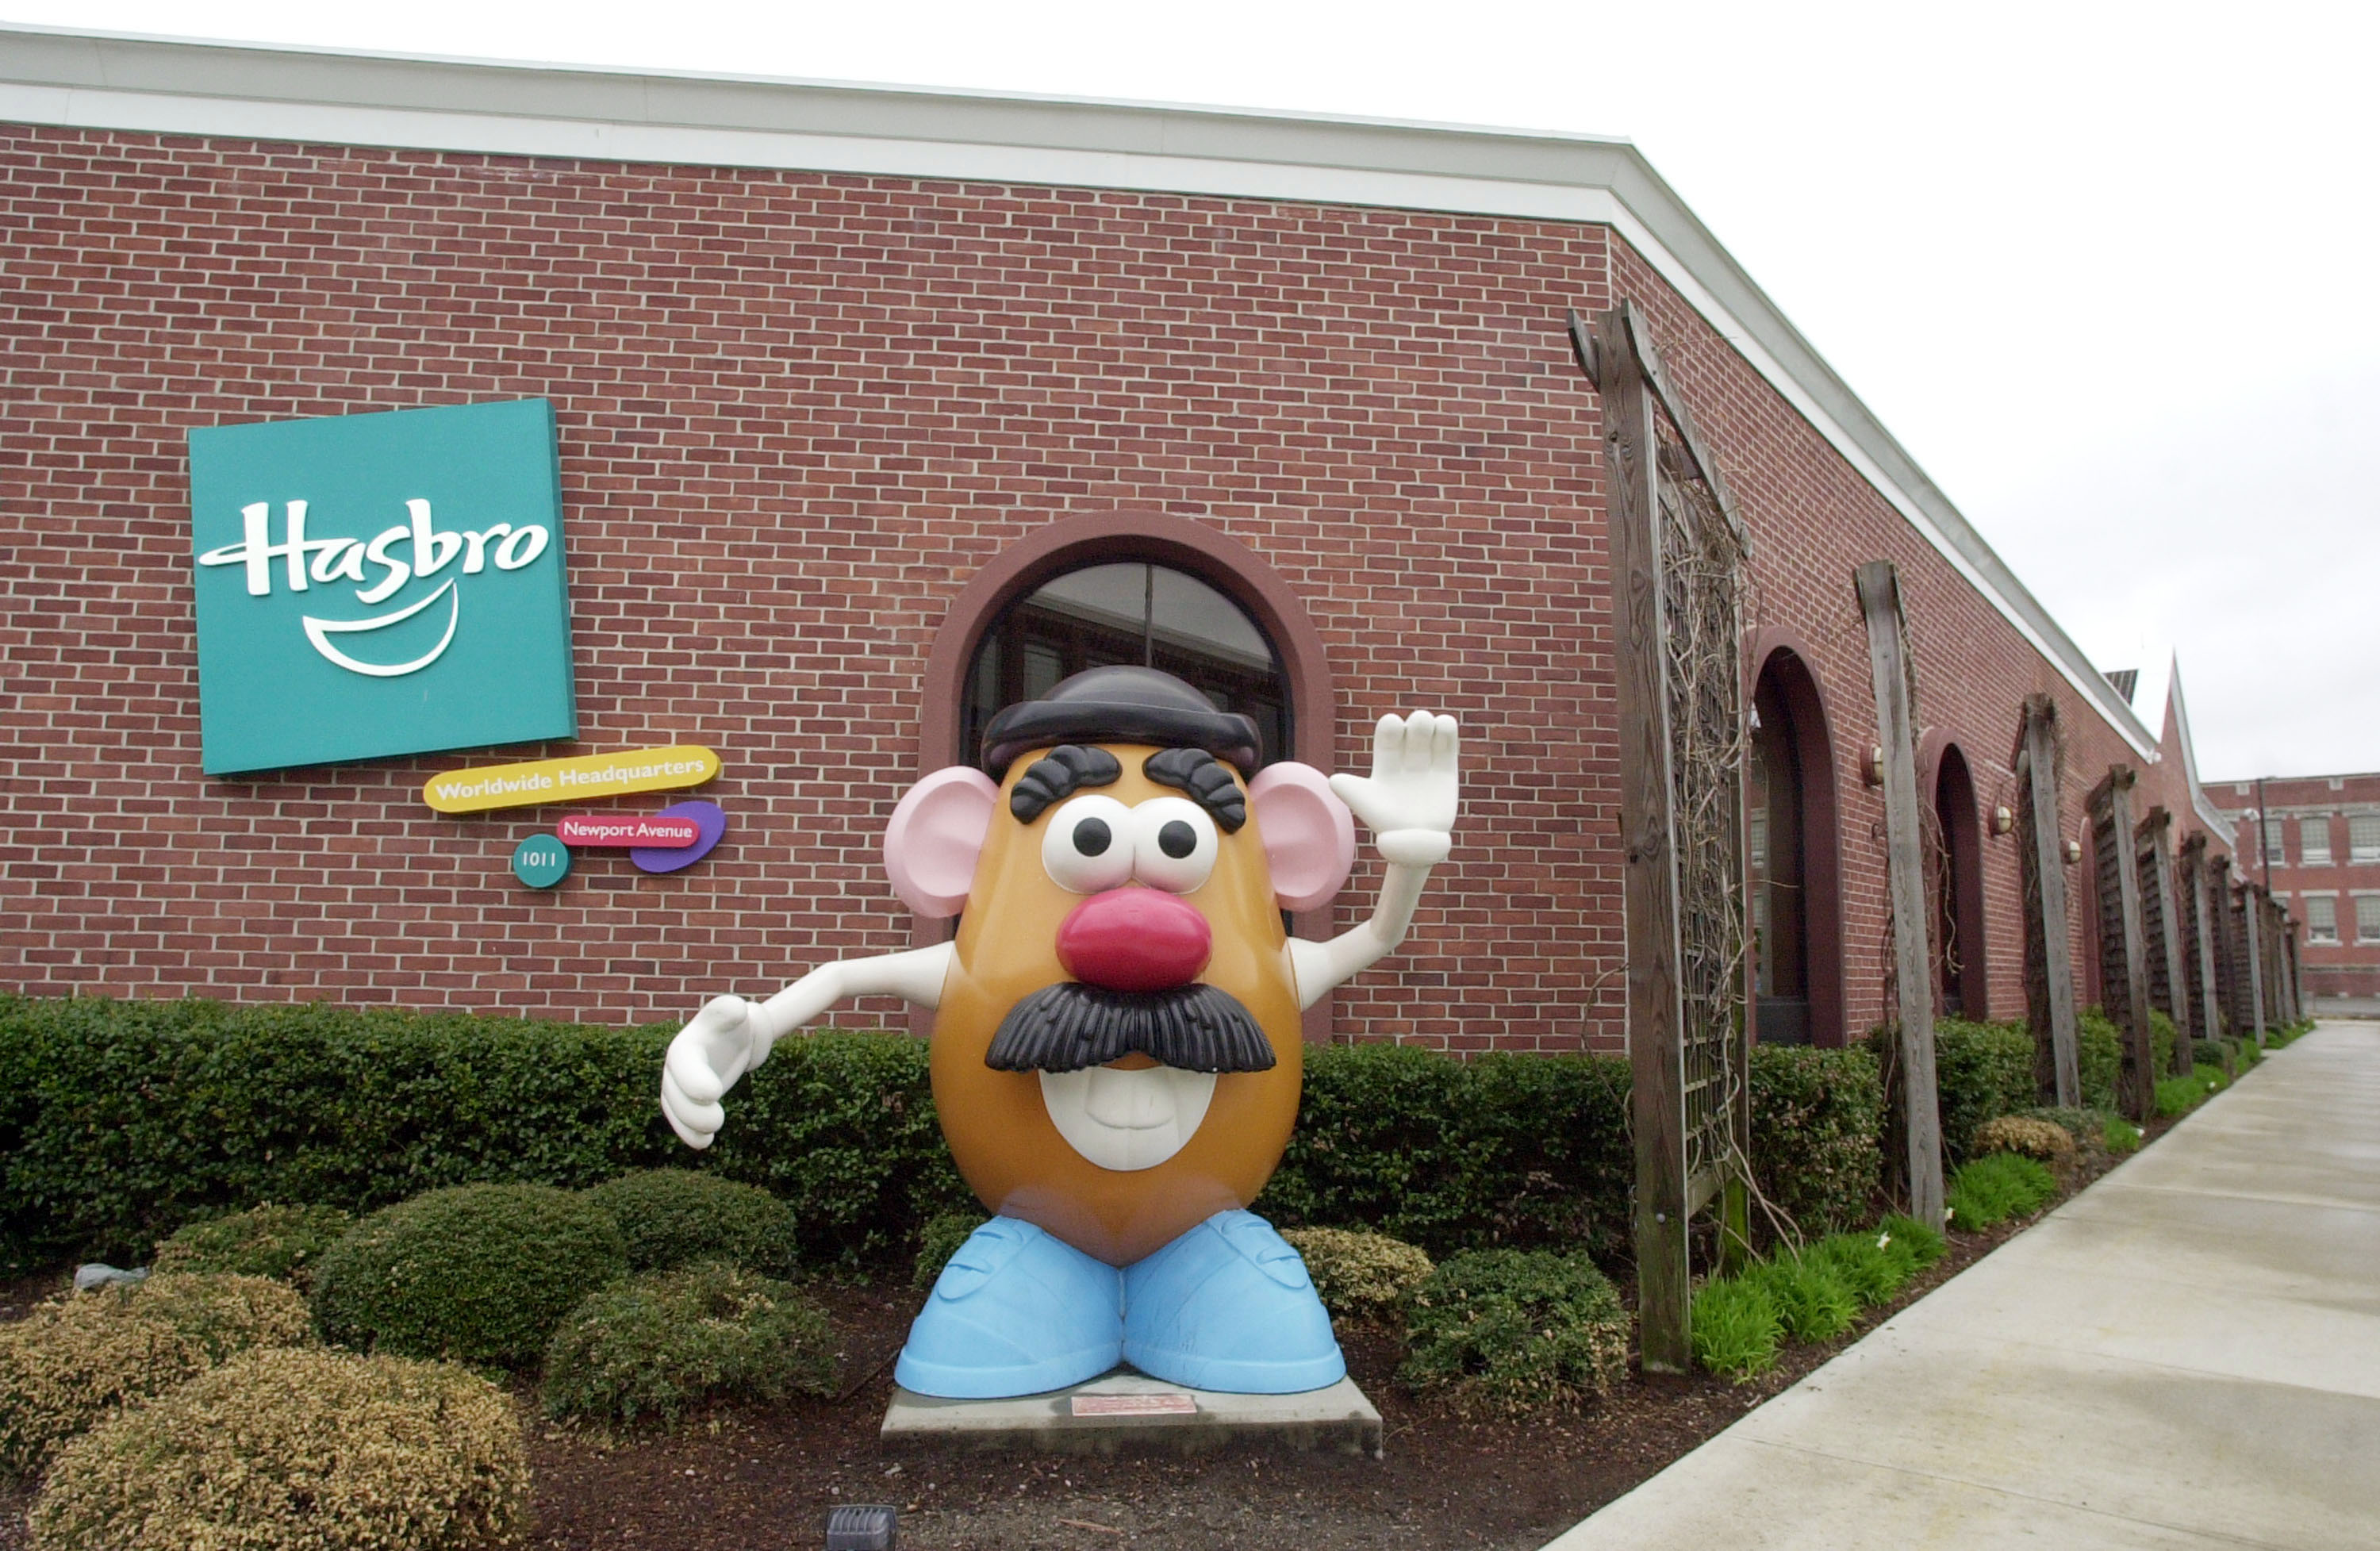 A statue of Mr. Potato Head greets visitors to the corporate